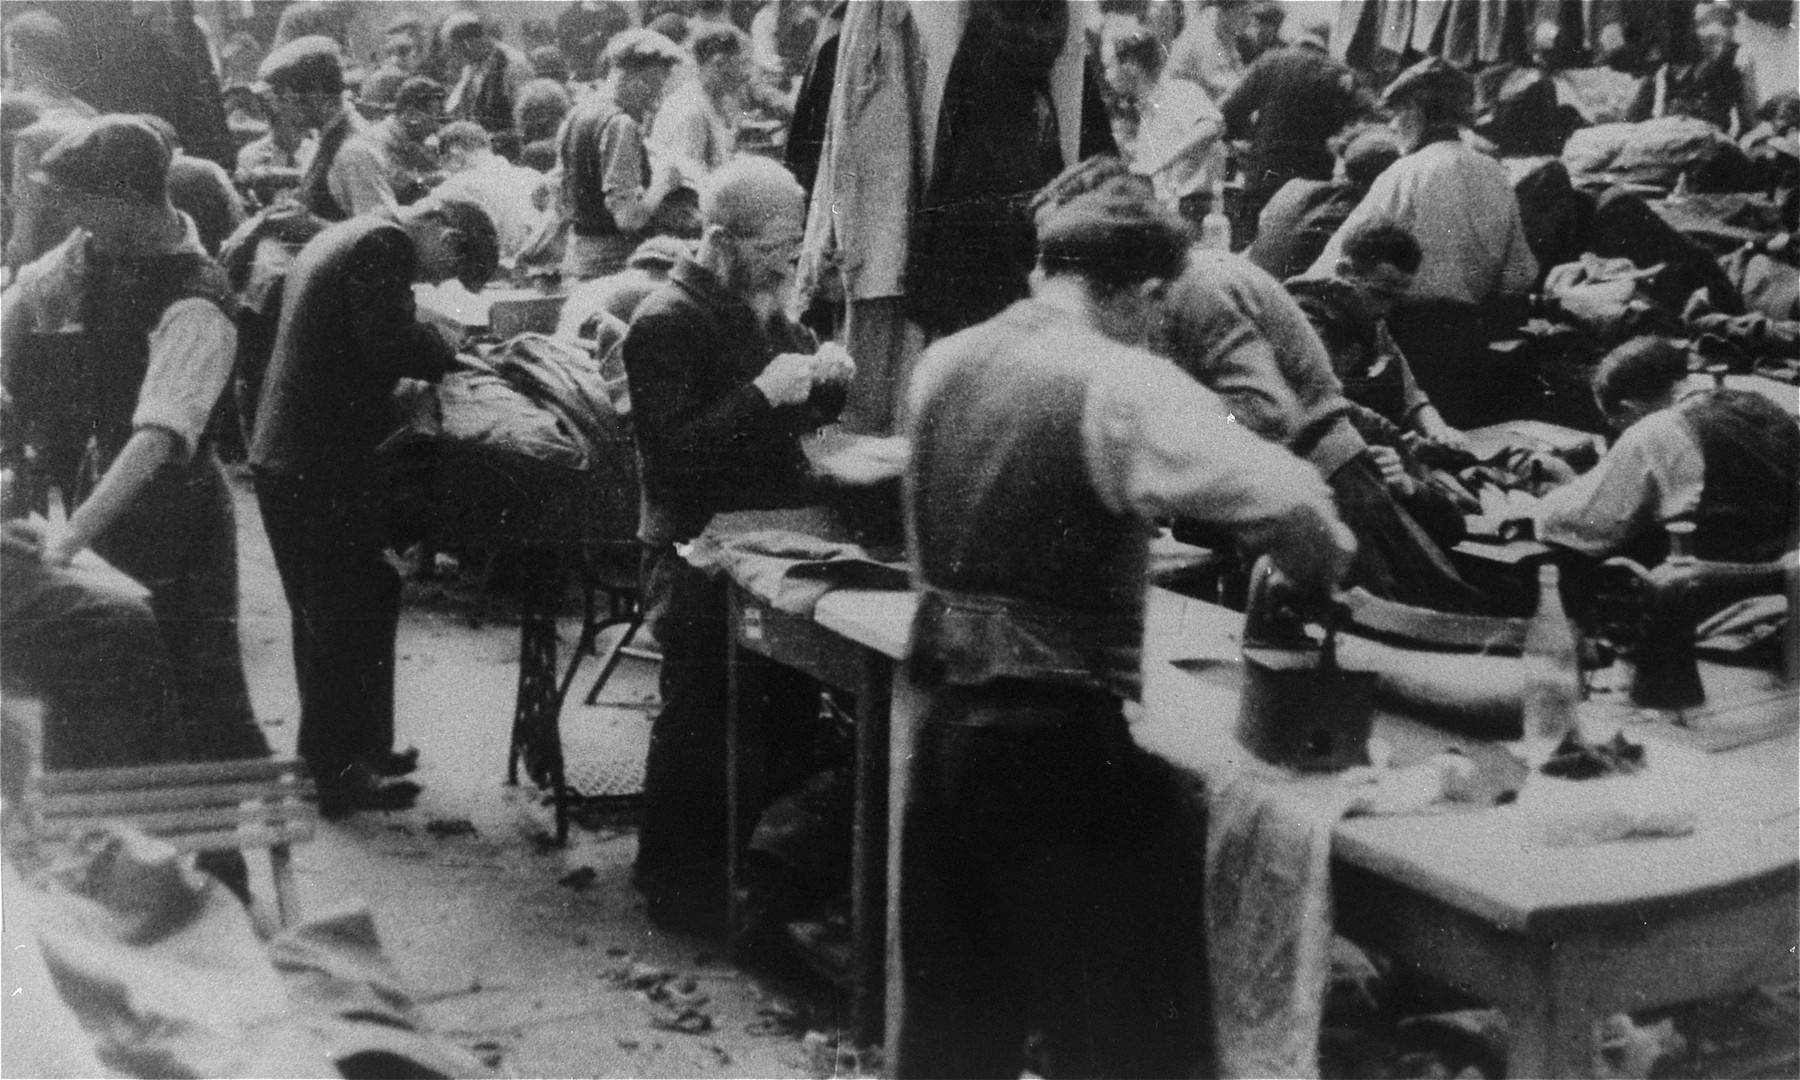 Jewish men work in a clothing workshop in the Lodz ghetto.